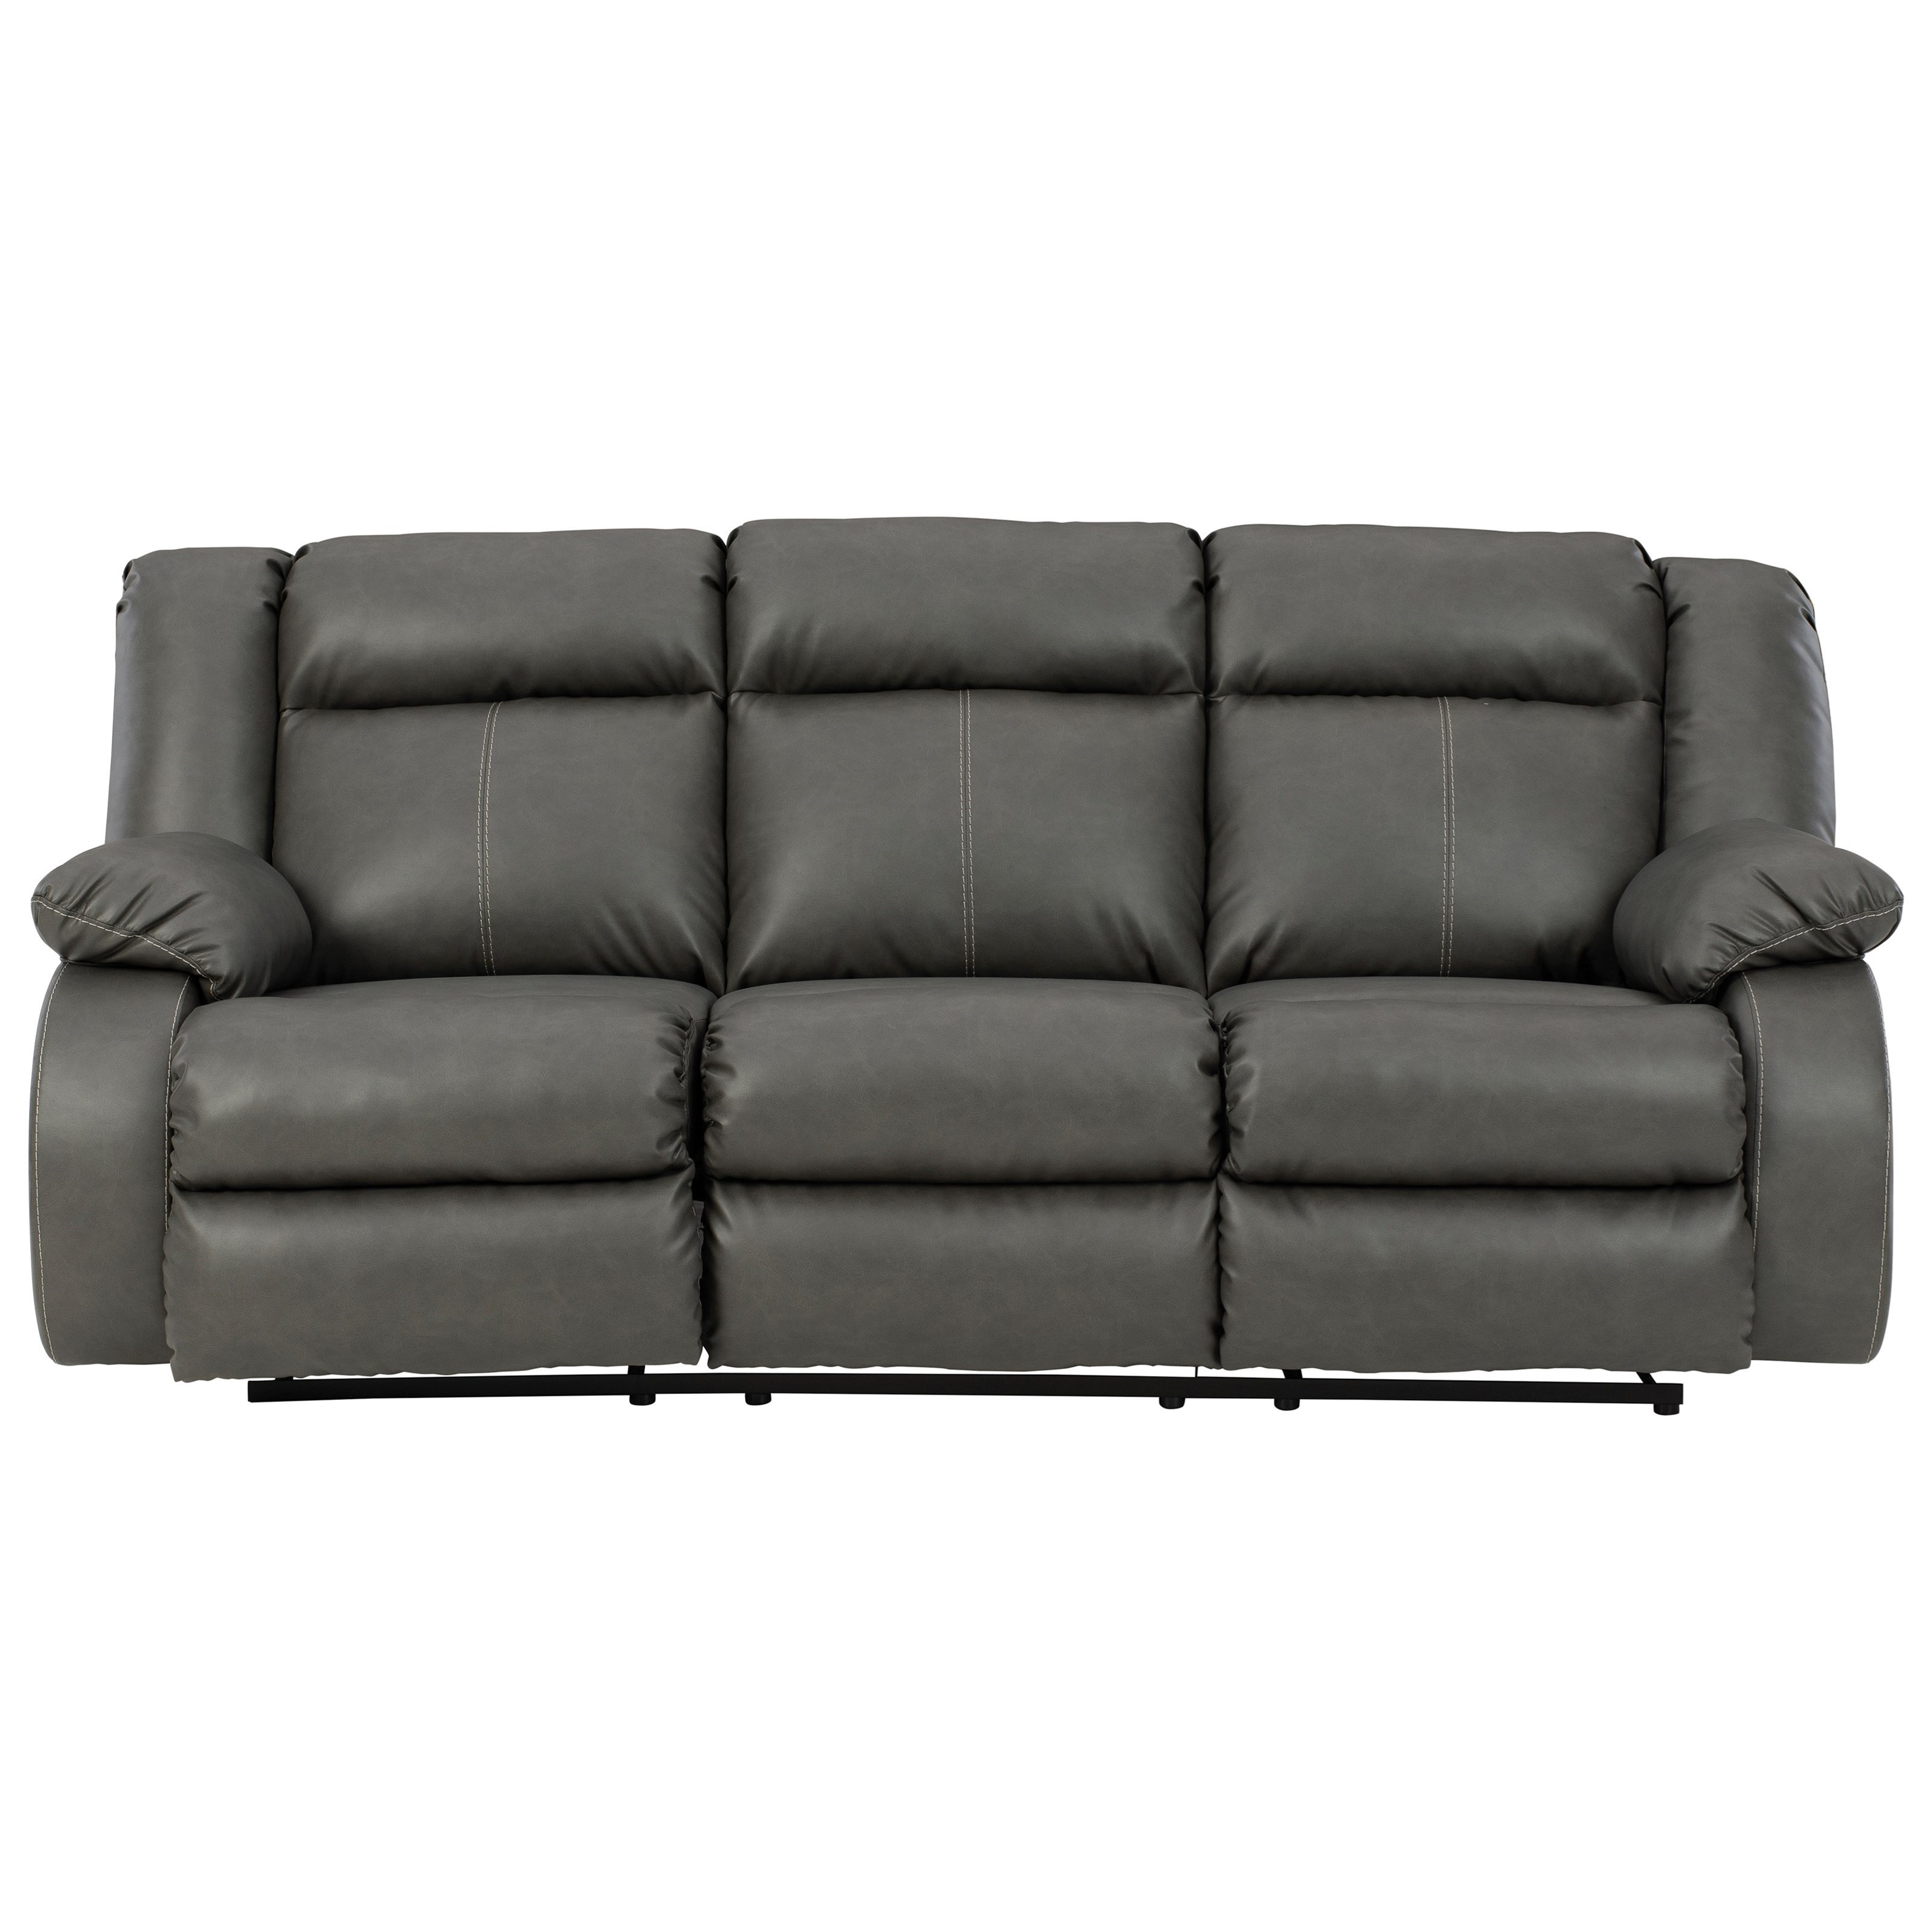 Denoron Power Reclining Sofa by Signature Design by Ashley at Zak's Warehouse Clearance Center